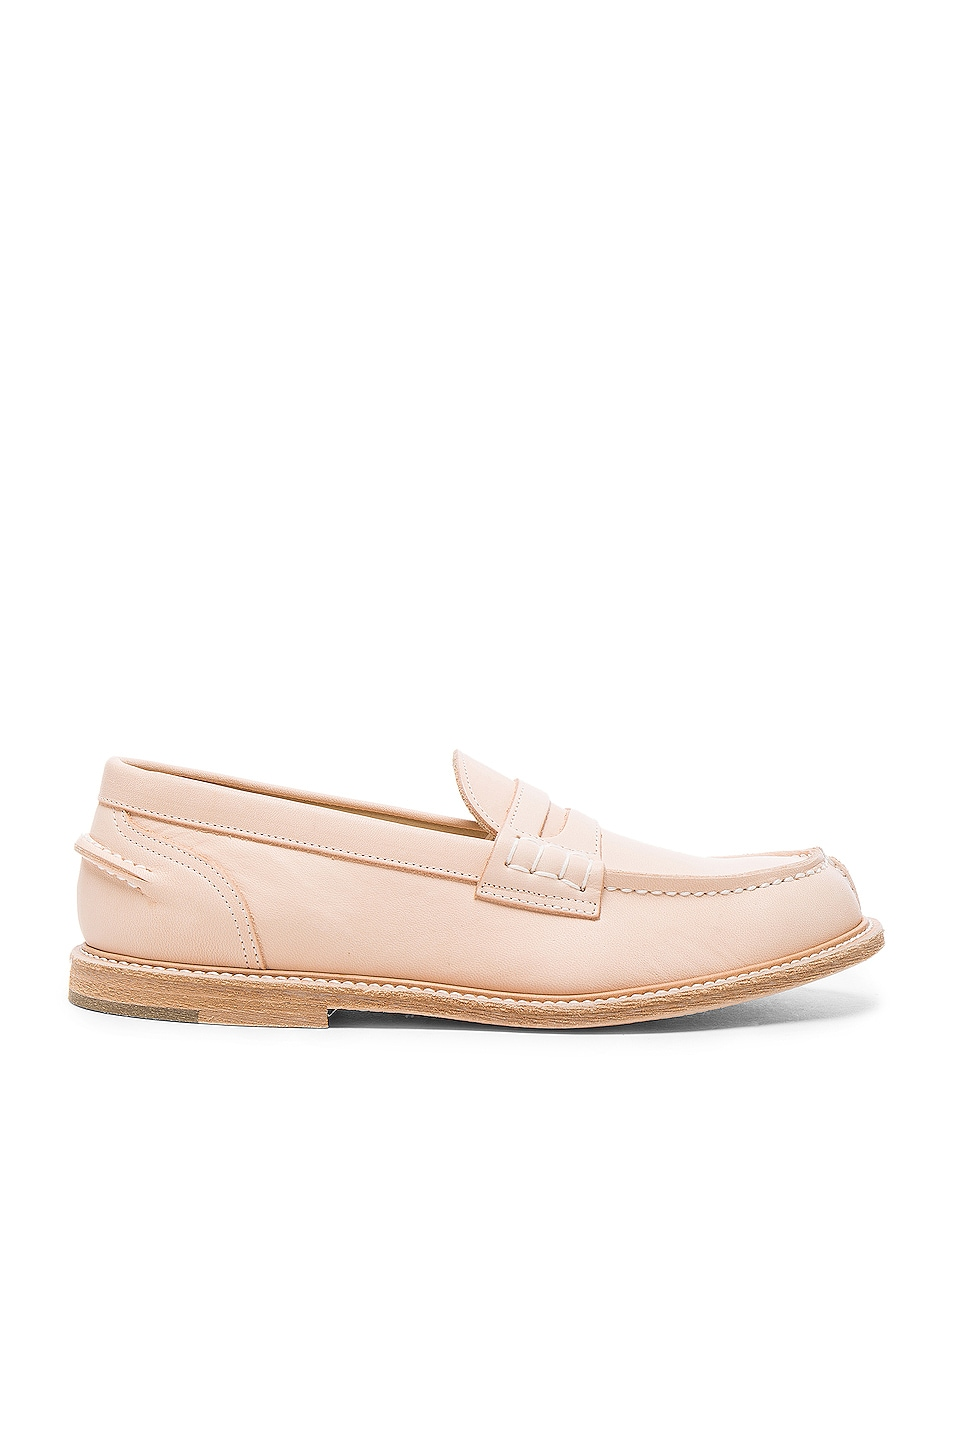 Image 1 of Hender Scheme Leather Loafers in Natural